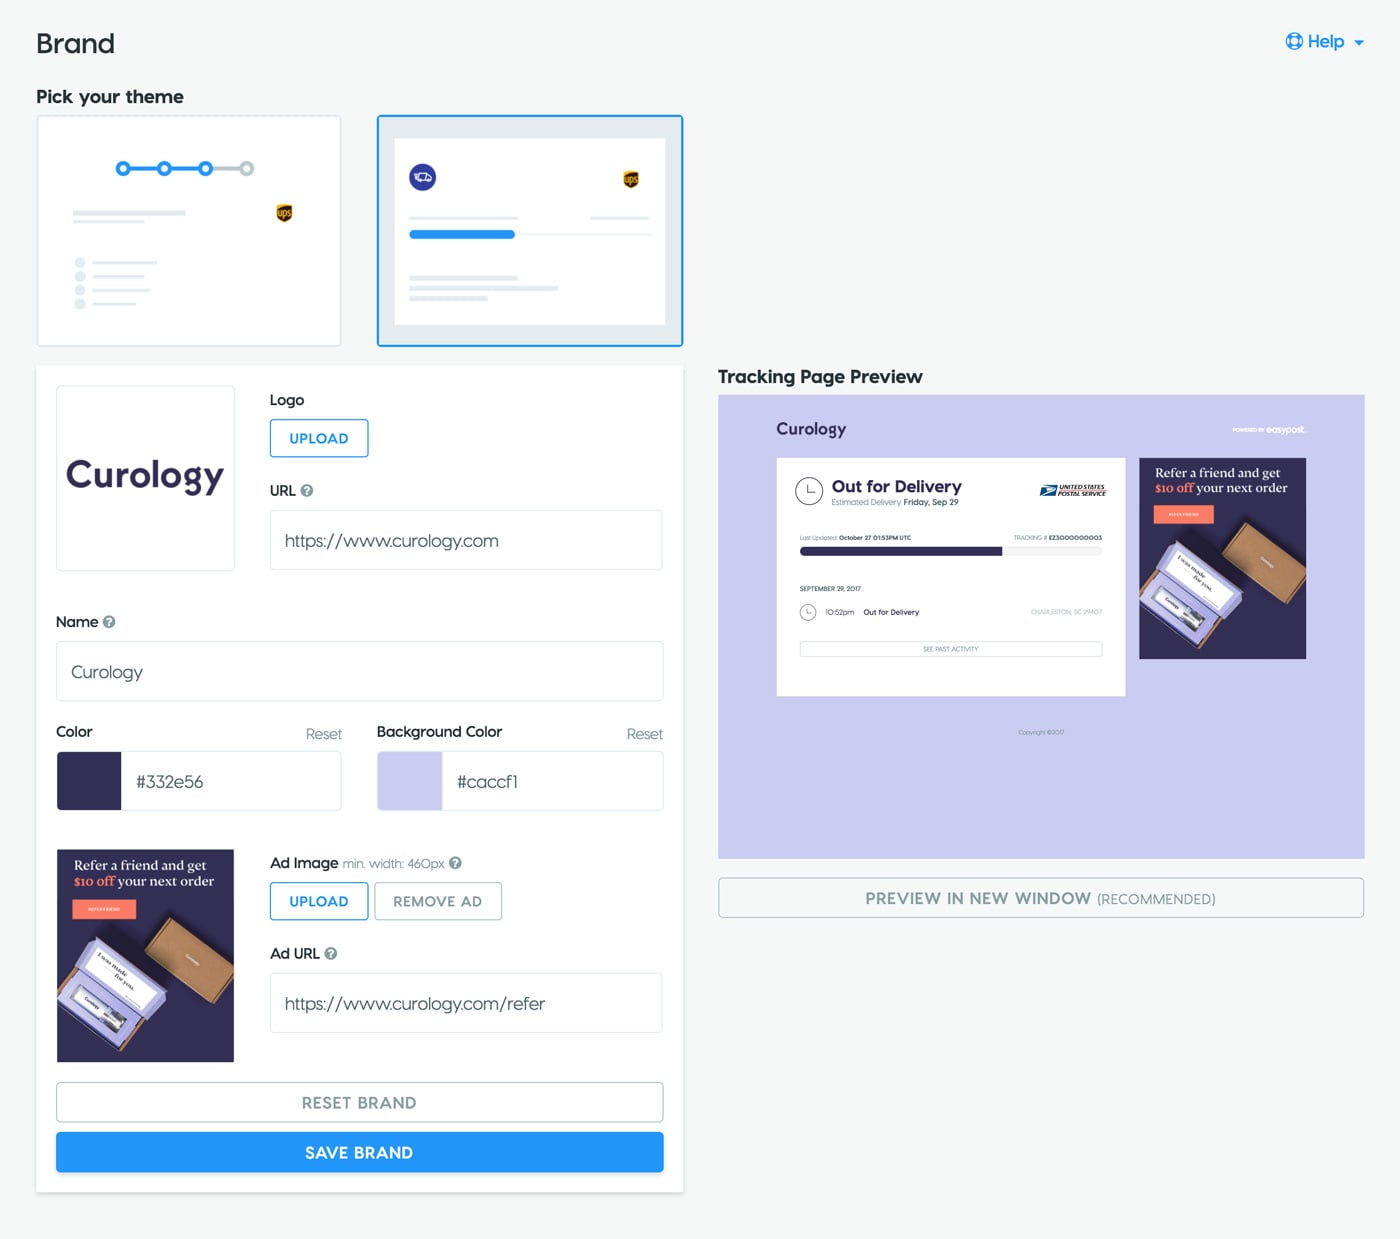 Brand Dashboard with Themes